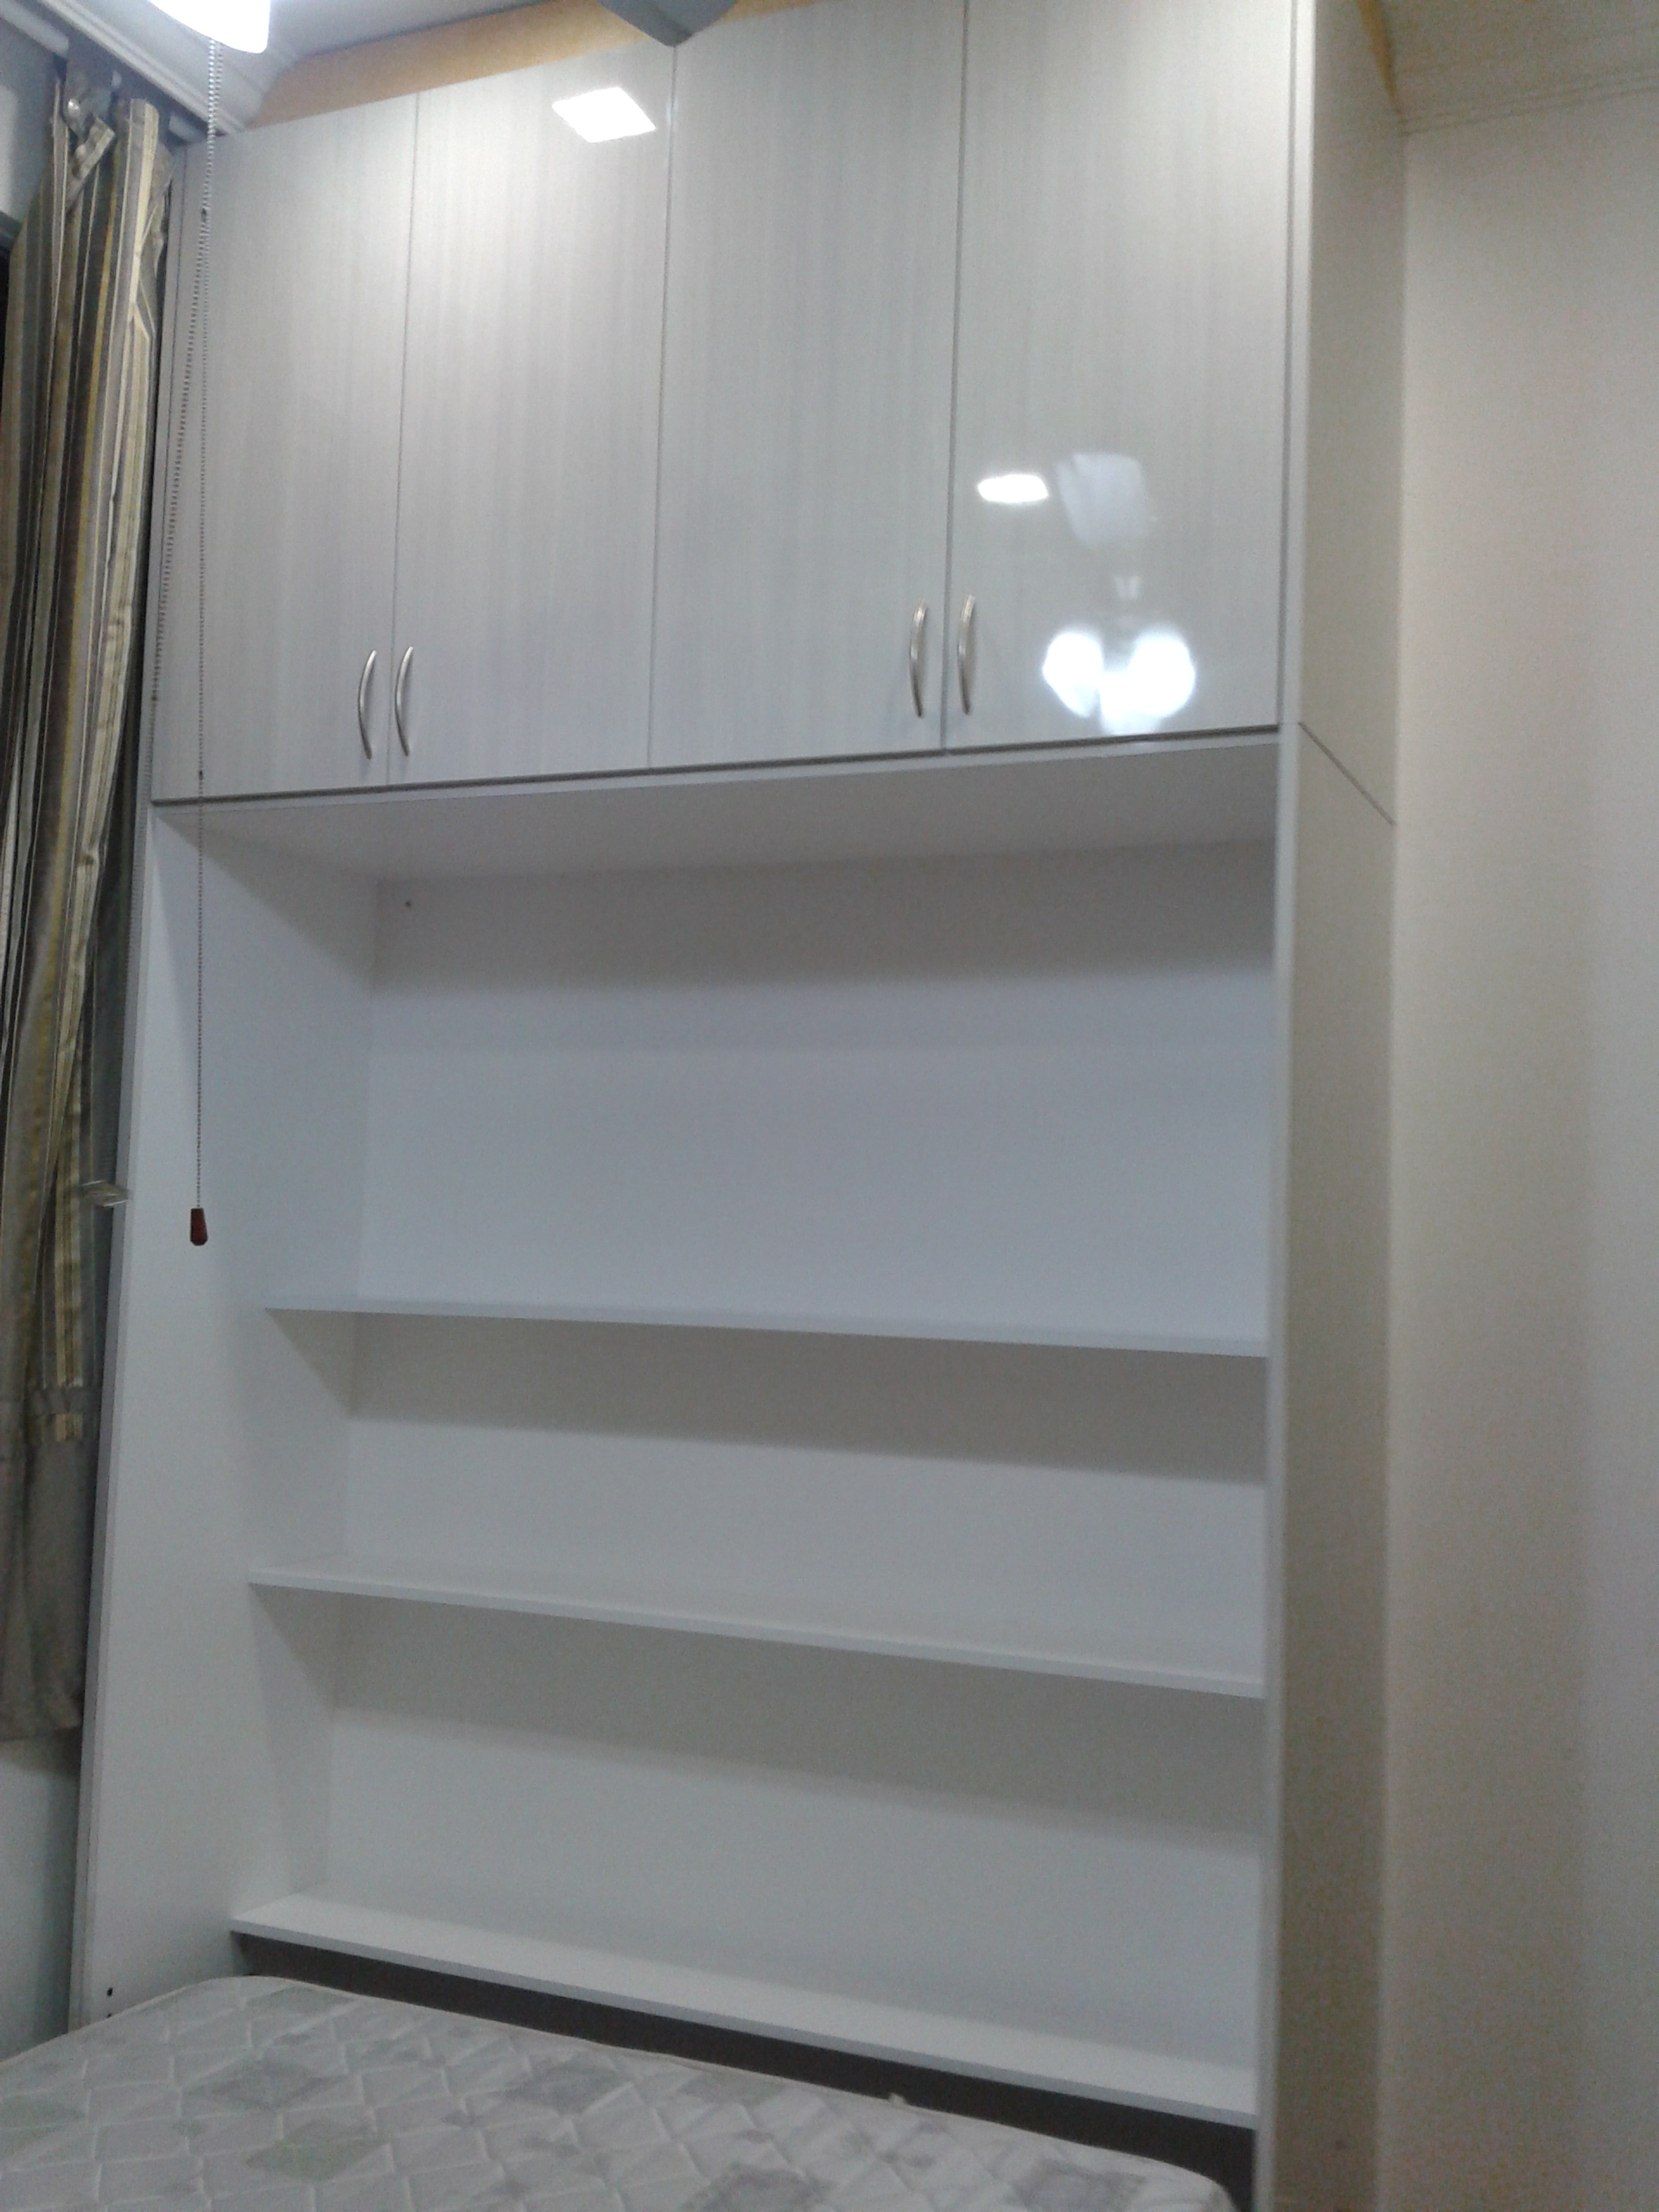 WallBed fully open (Hidden Shelves)